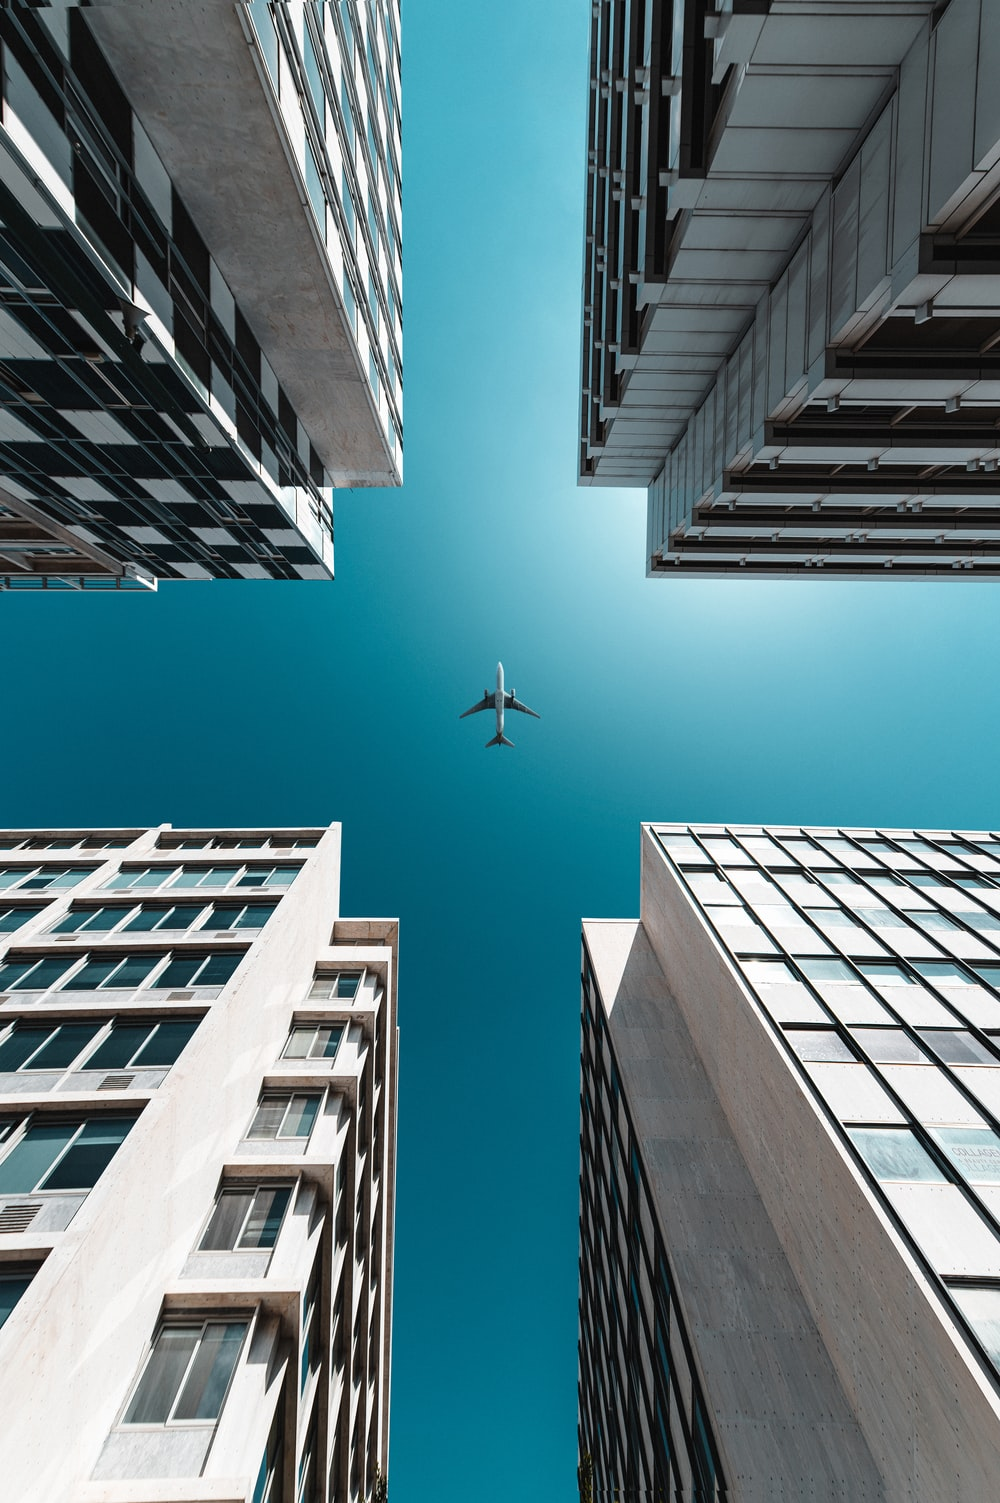 white bird flying over the building during daytime